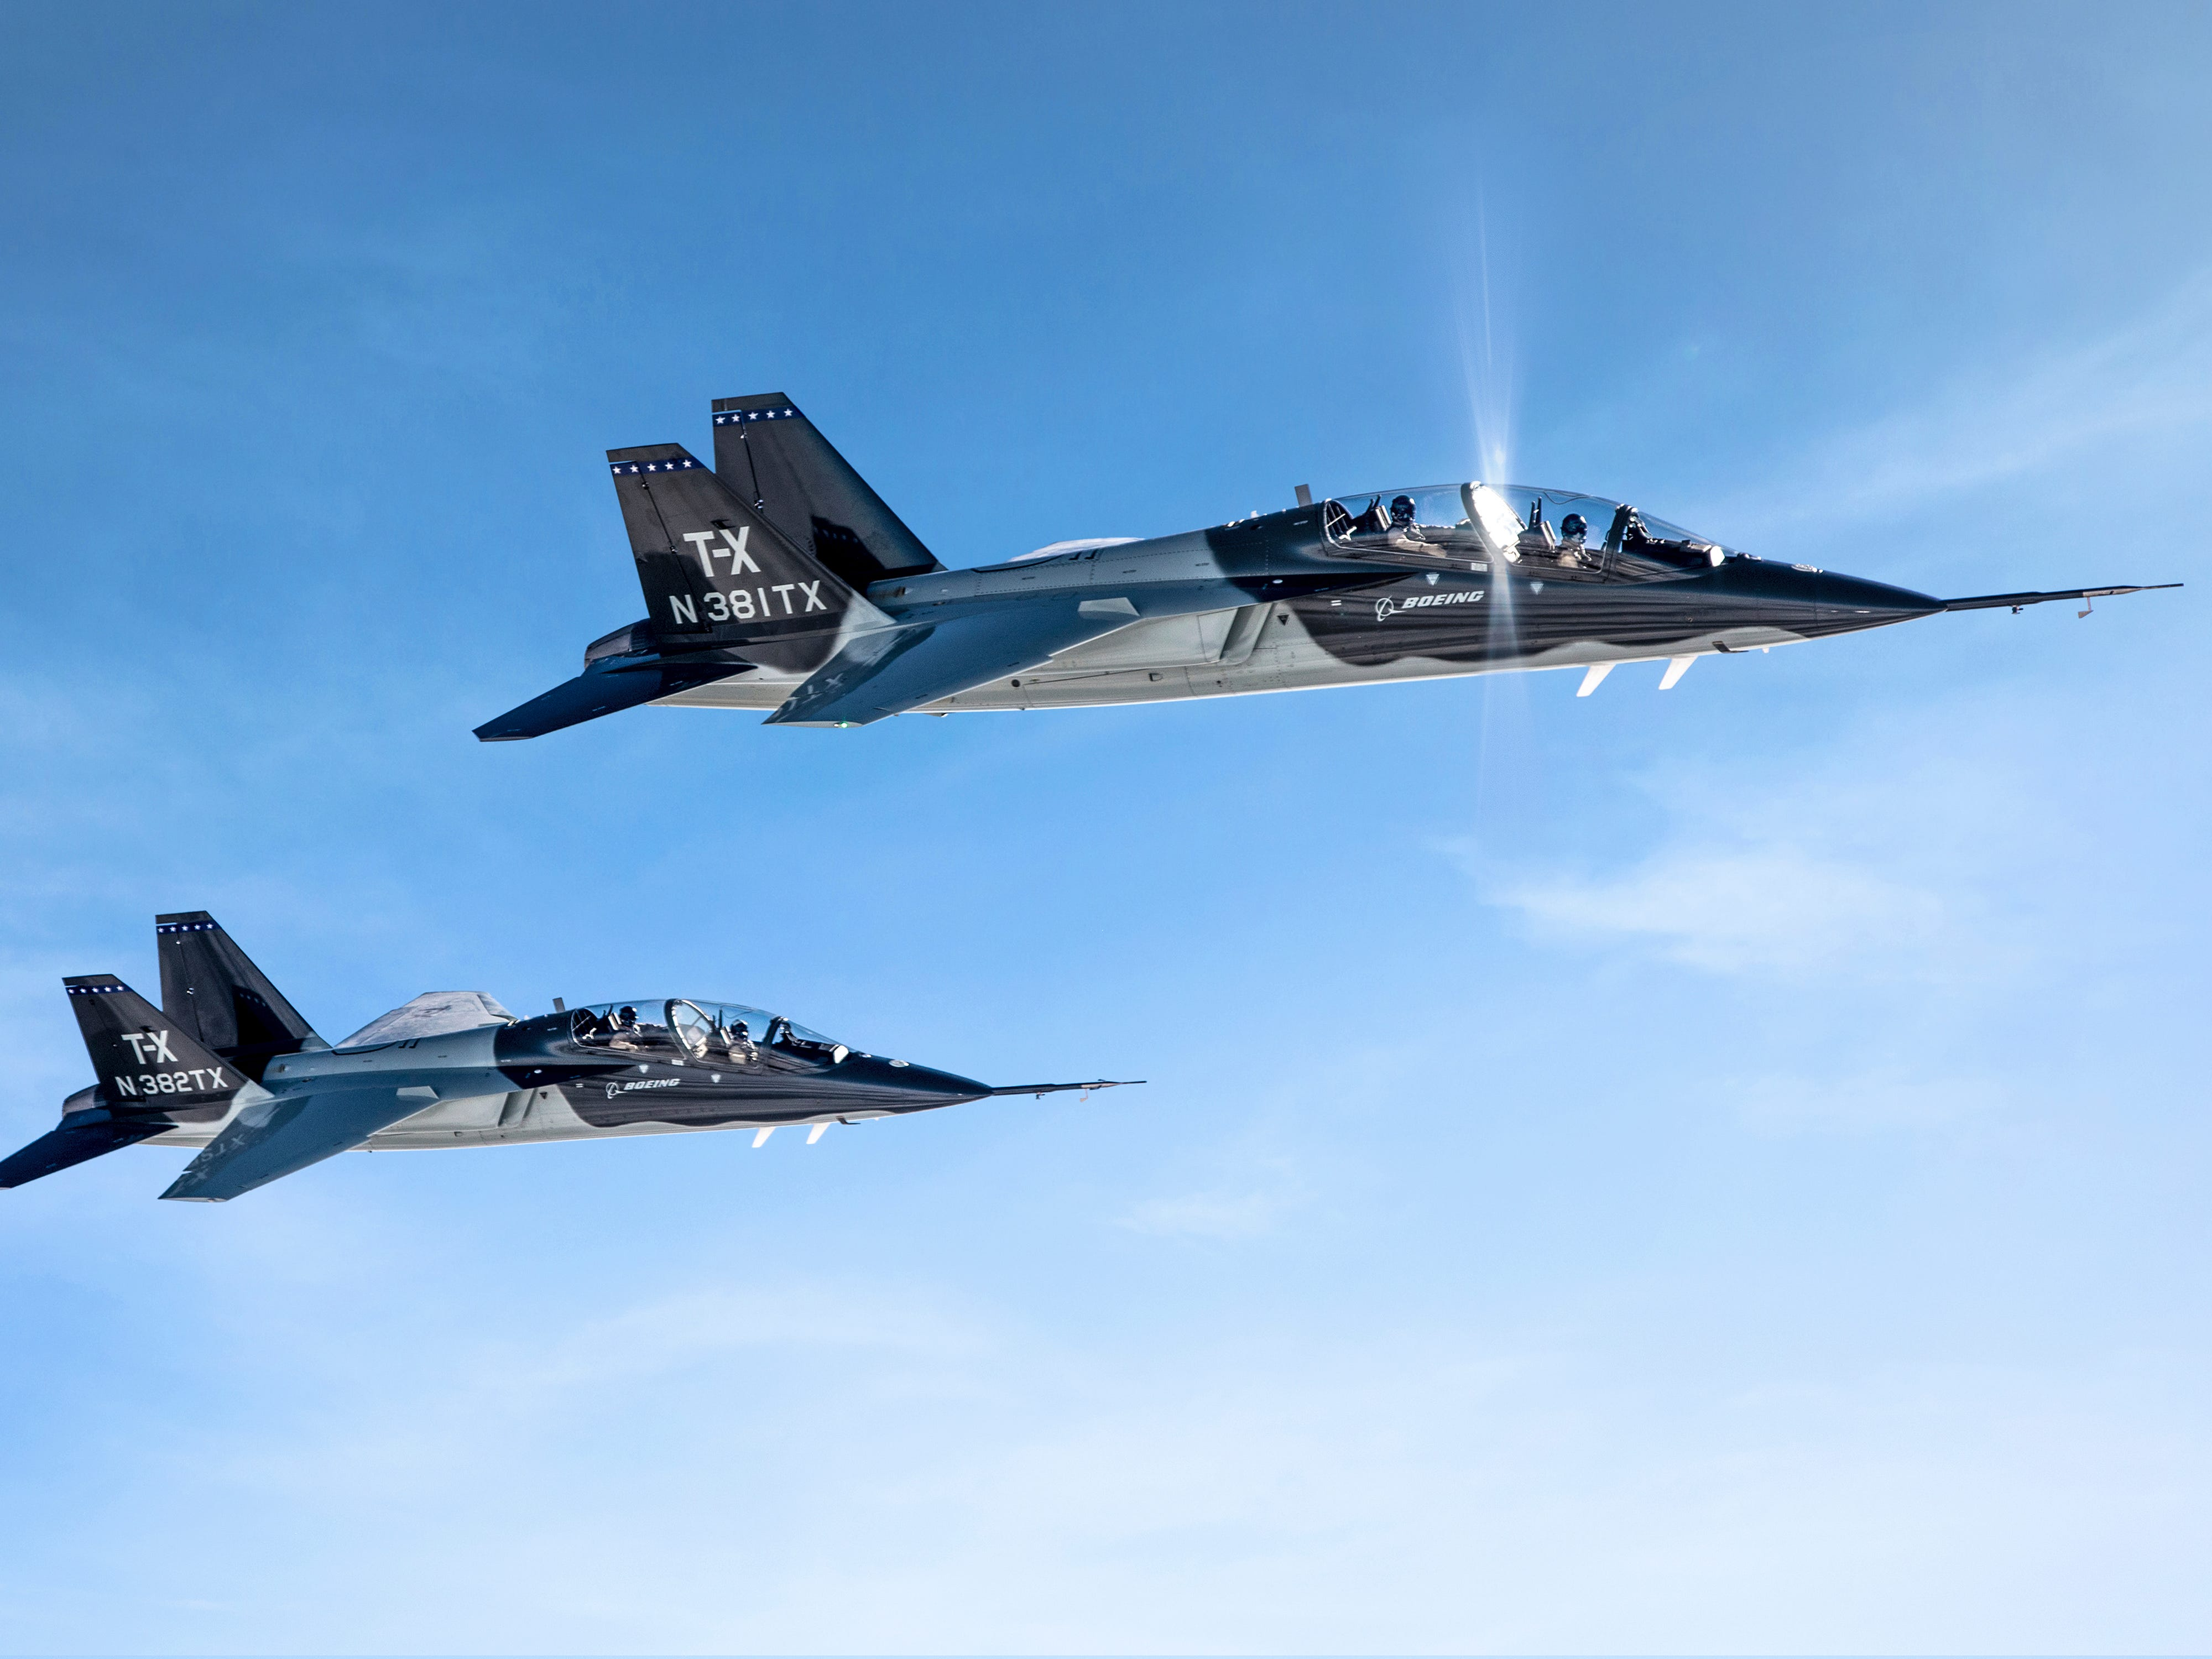 New manufacturing facility in West Lafayette, in Purdue's Discovery Park District, will support production of the U.S. Air Force's next-generation jet trainer. The facility is expected to create up to 300 new jobs, according to state and university officials on Wednesday, Sept. 8, 2019.